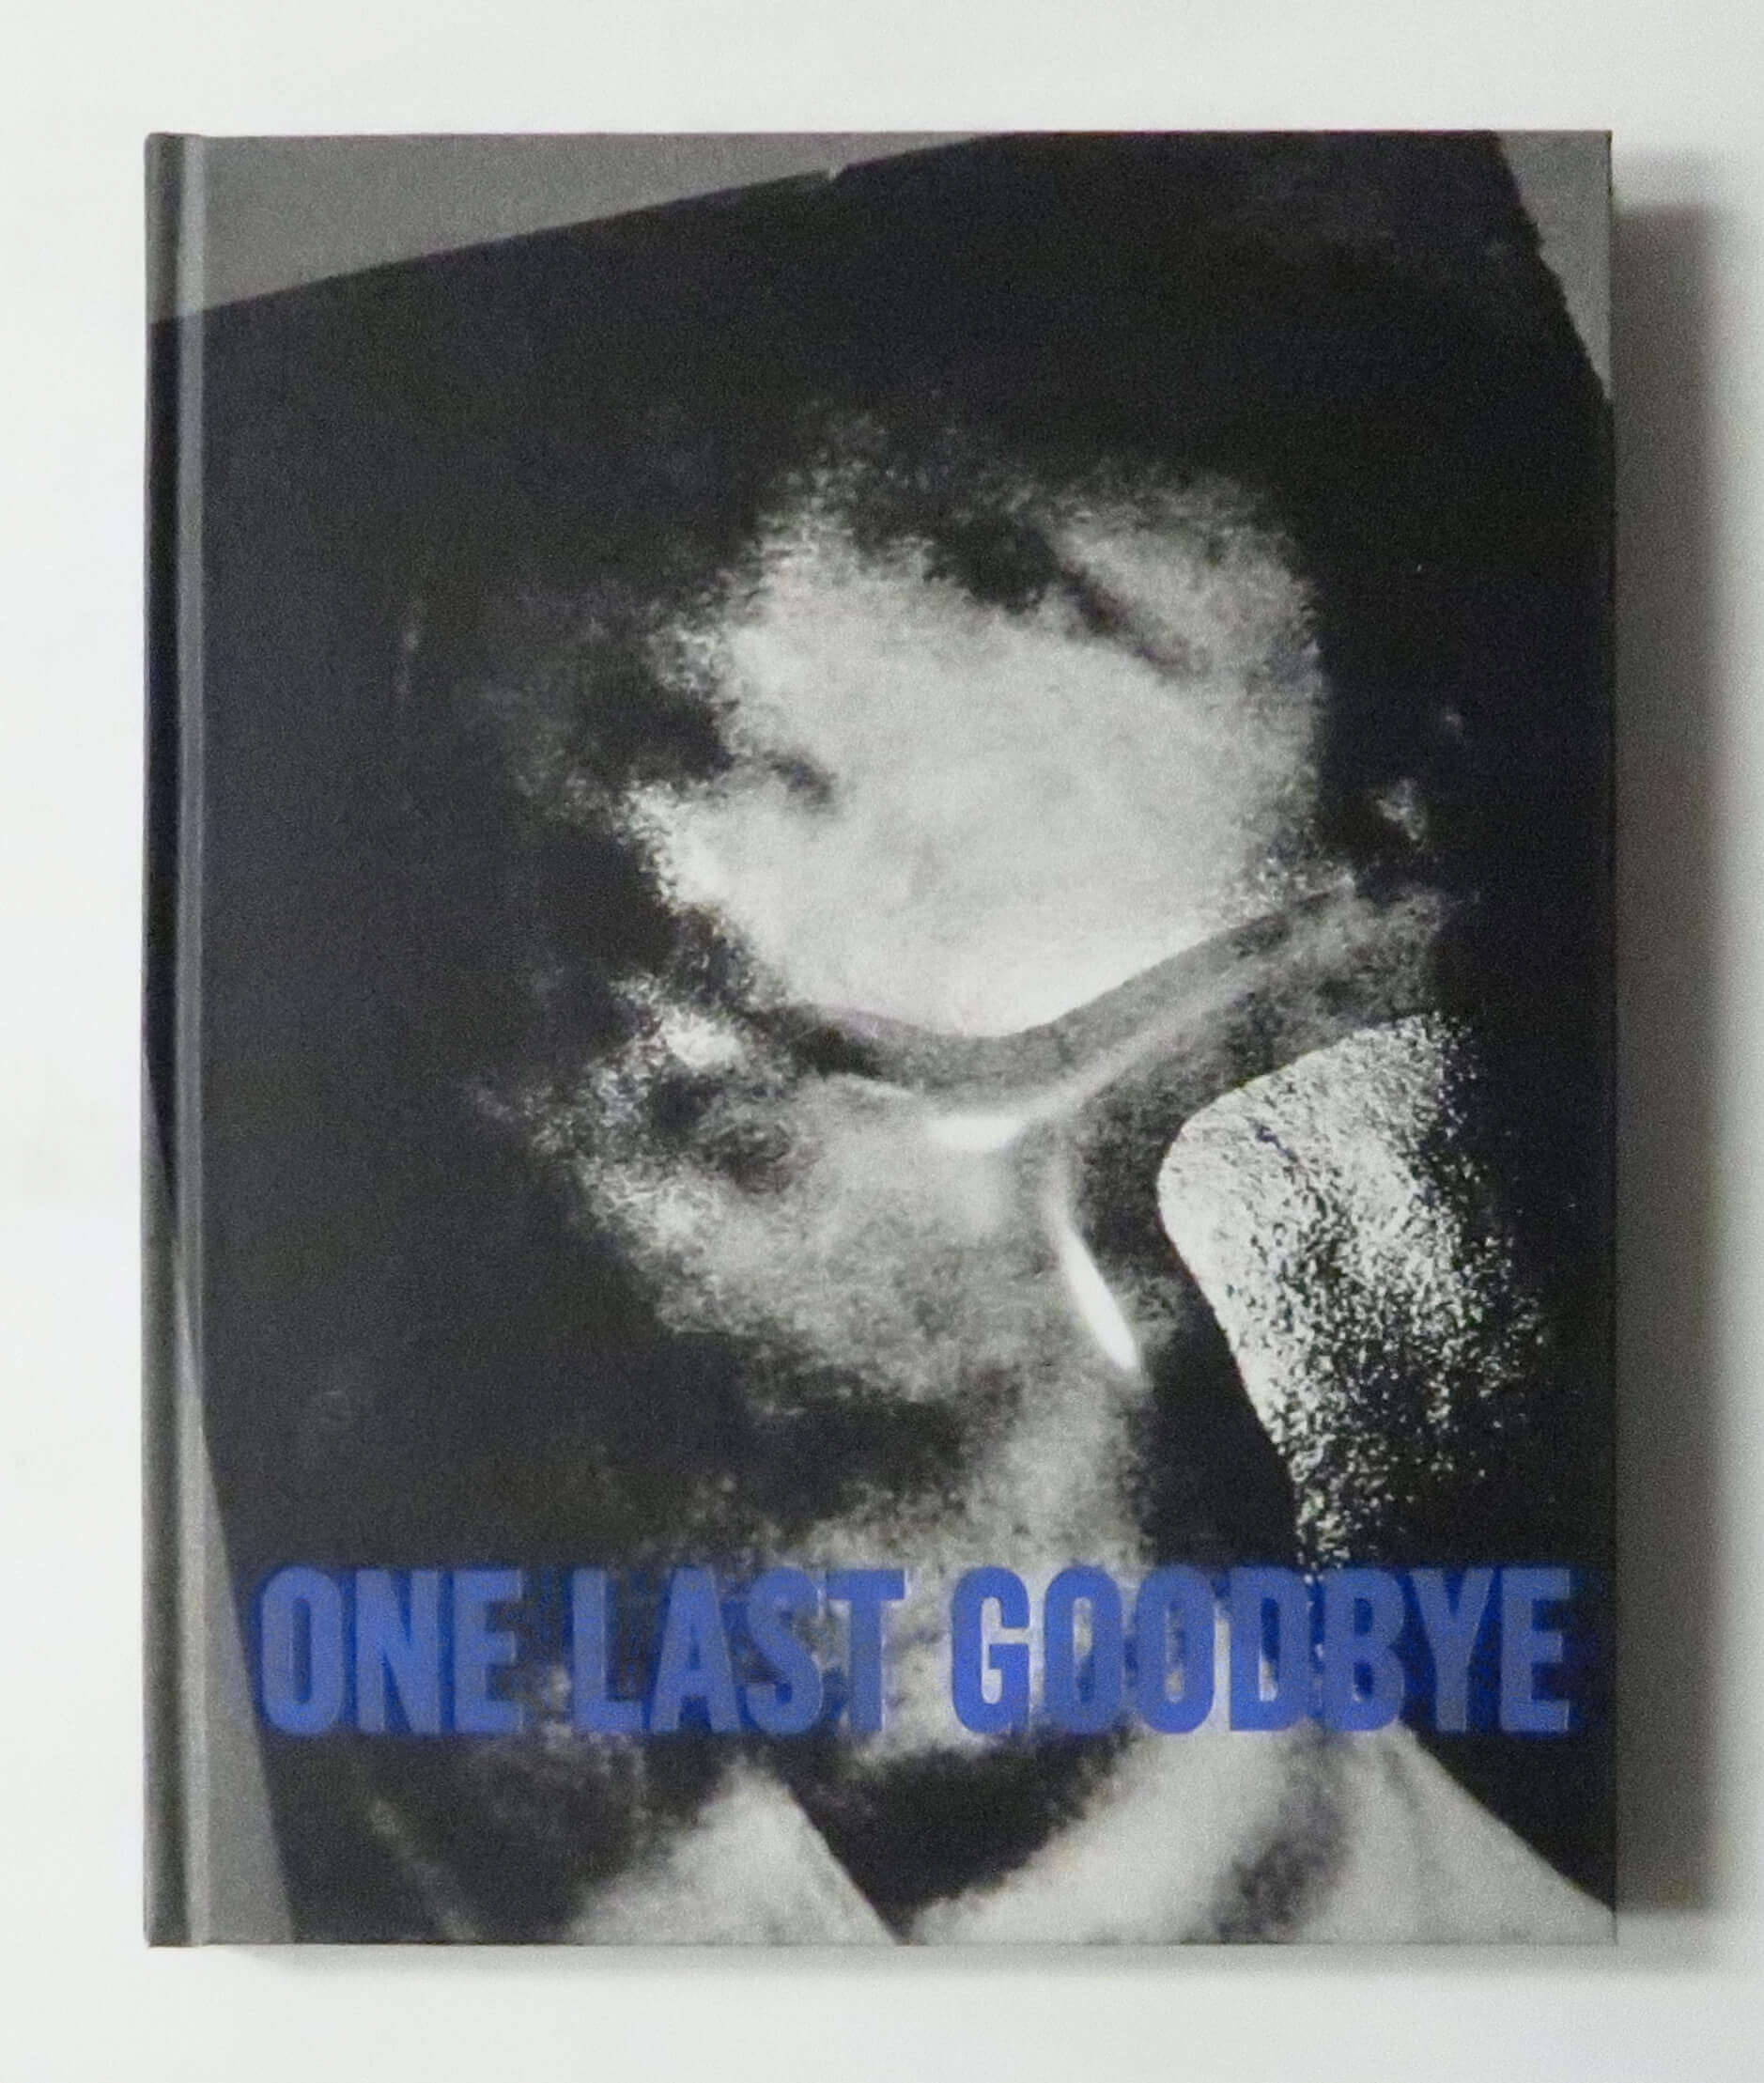 One Last Goodbye | Jehsong Baak